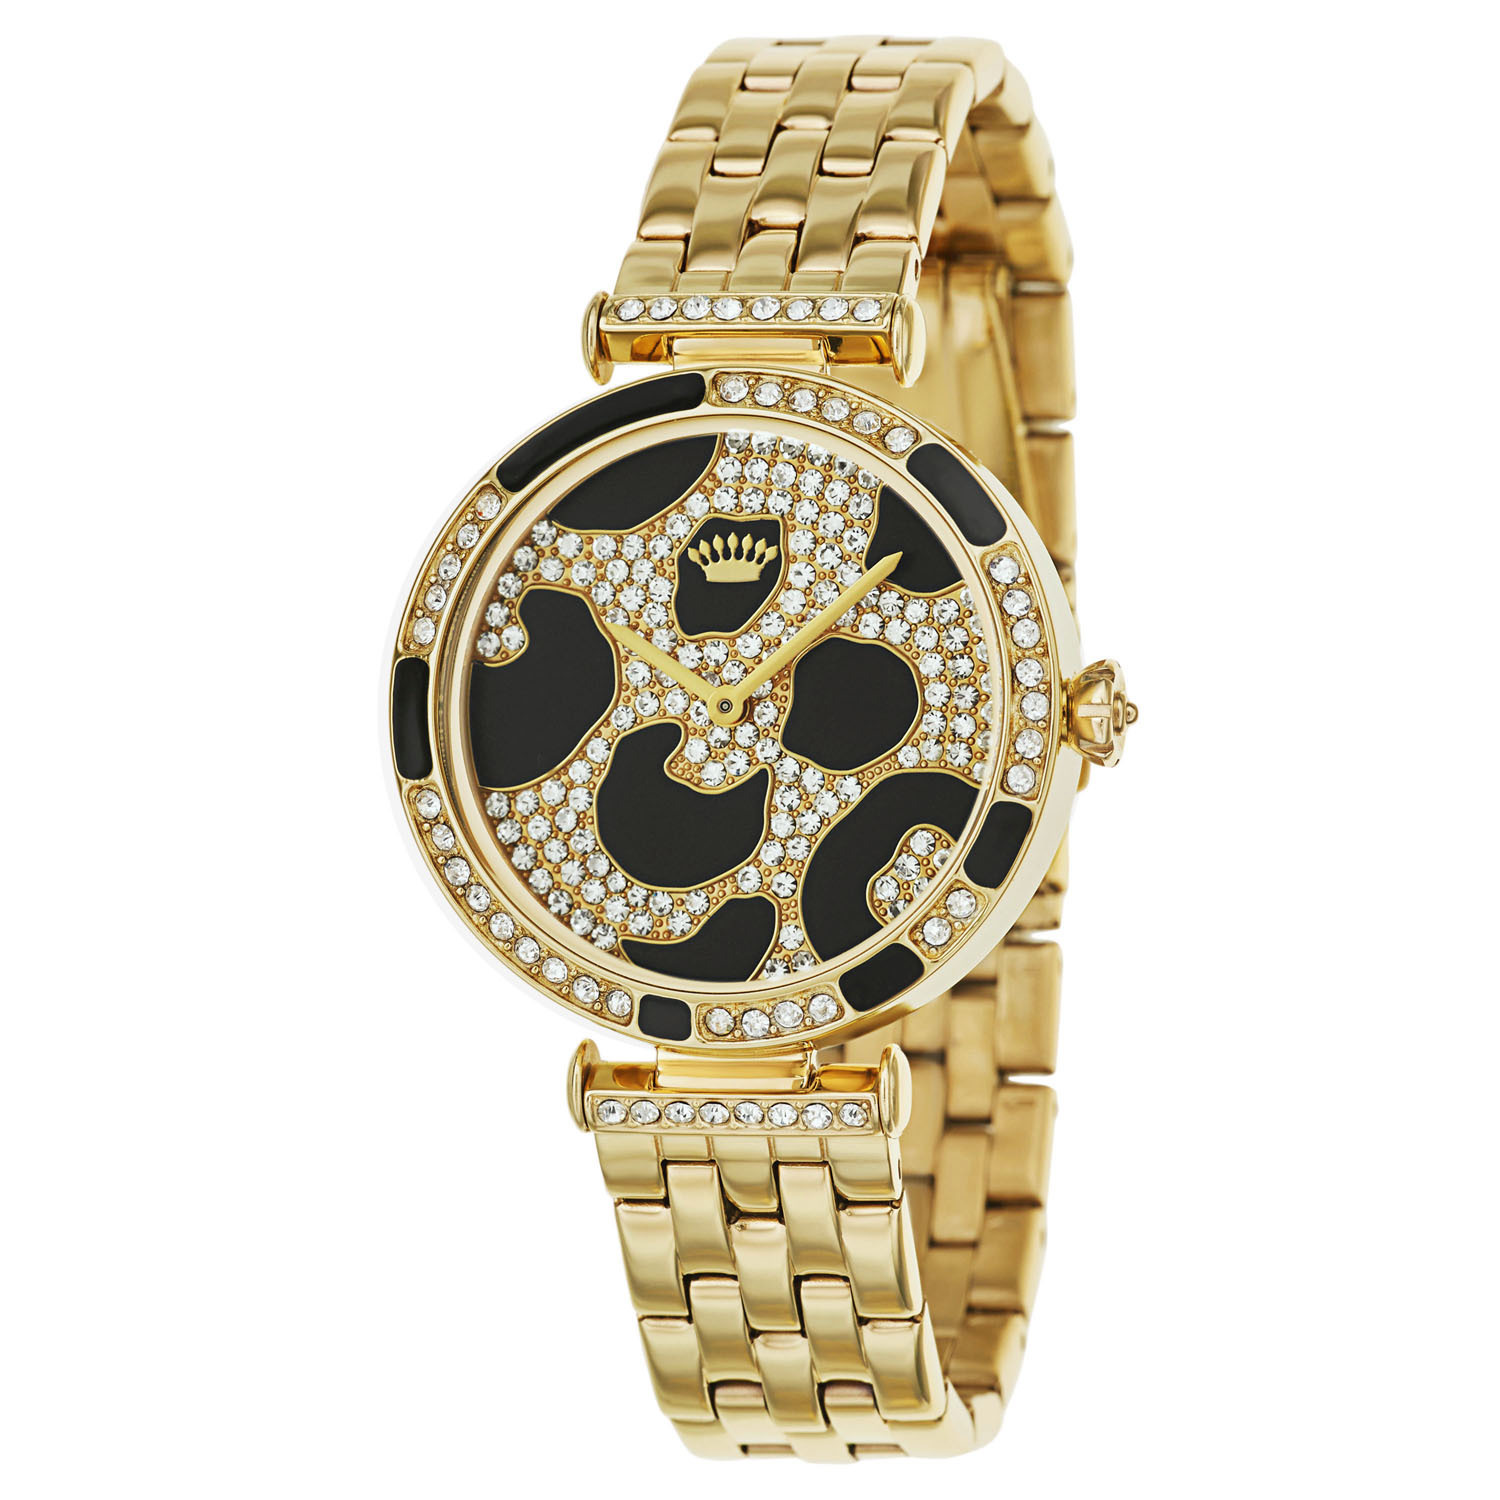 Juicy Couture 1901175 Juicy Couture Womens Gold Watch